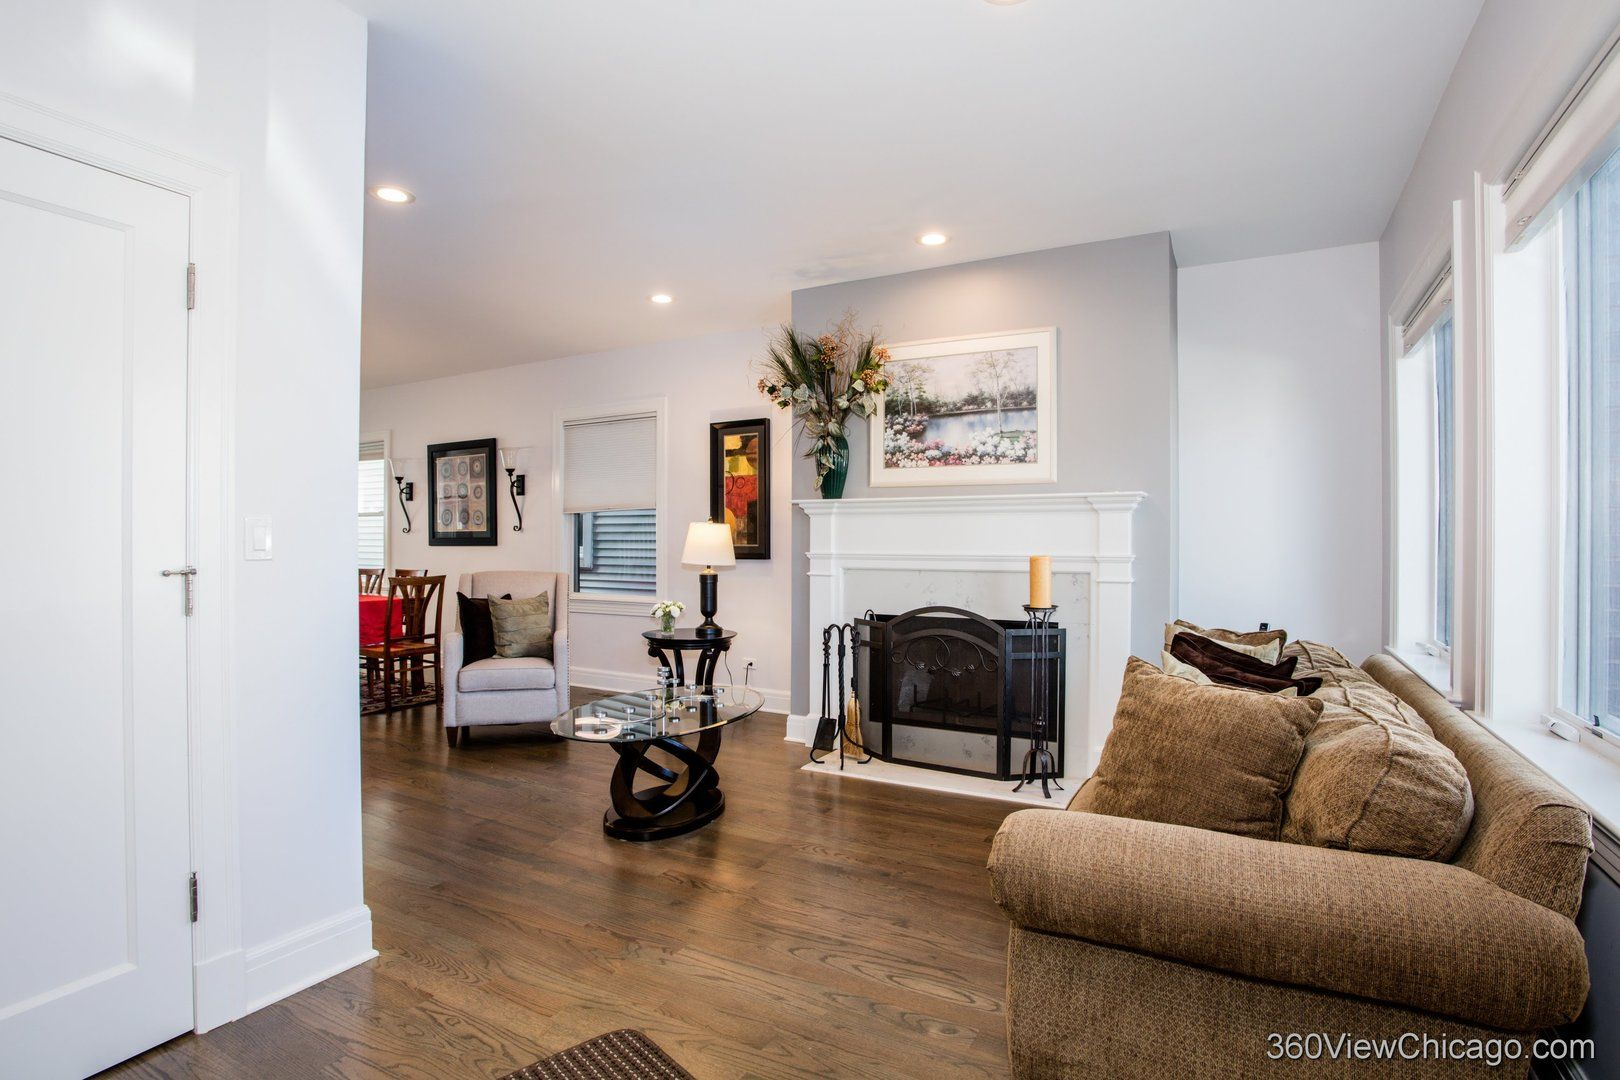 Photo 6: Photos: 1733 Troy Street in Chicago: CHI - Humboldt Park Residential for sale ()  : MLS®# 10911567